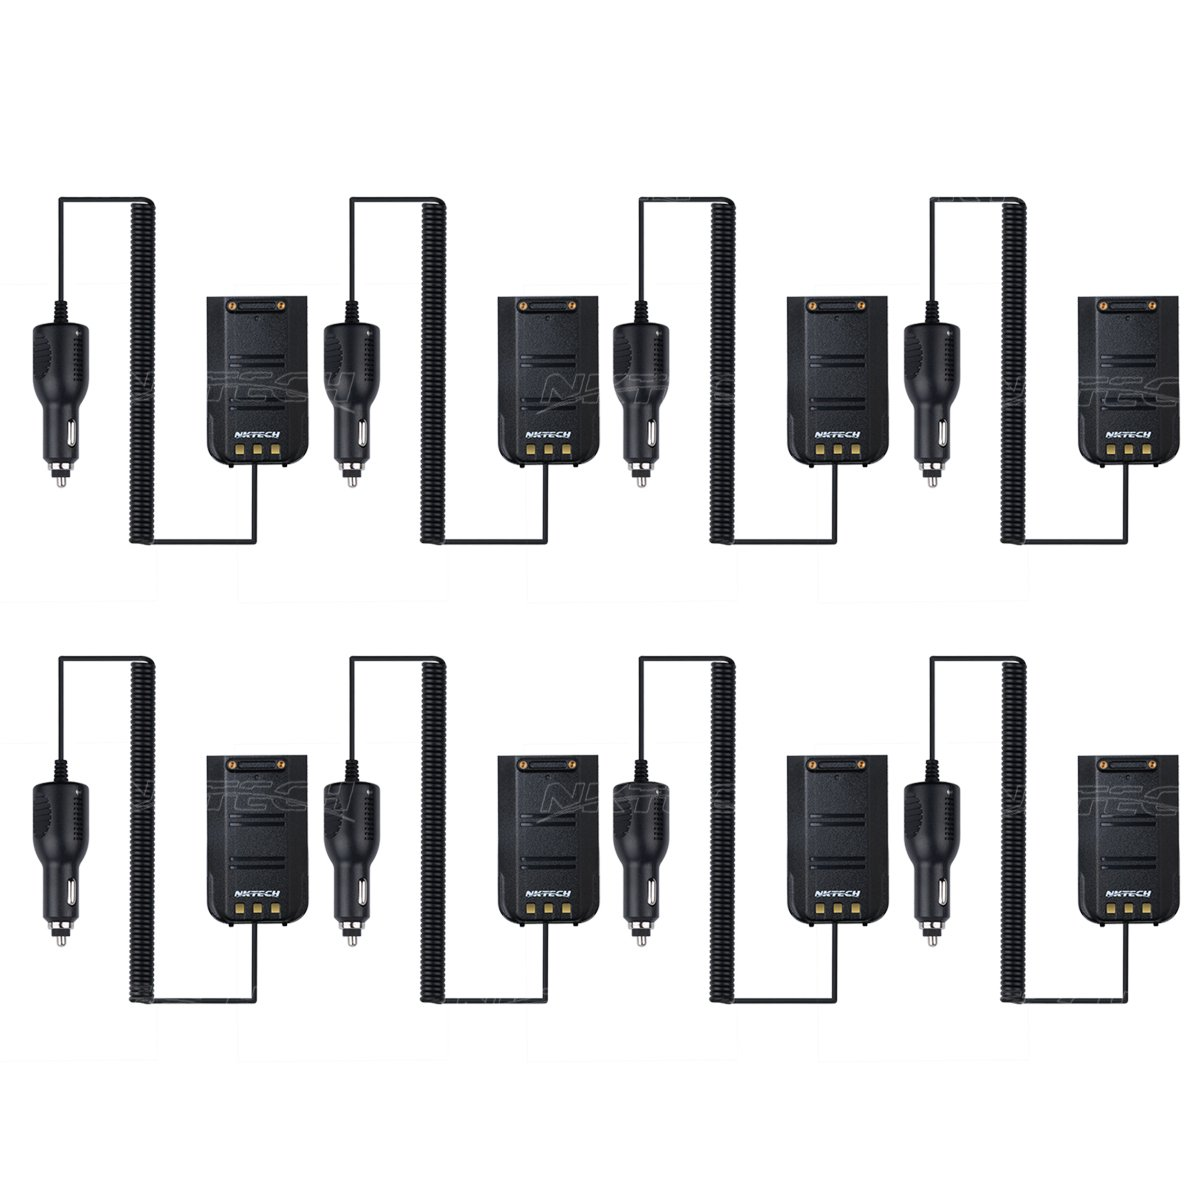 NKTECH Car Charger Battery Eliminator For TYT Tytera MD-380 NKTECH MD-380U MD-380V Digital Mobile Radio DMR Two Way Radio Transceiver Pack of 9